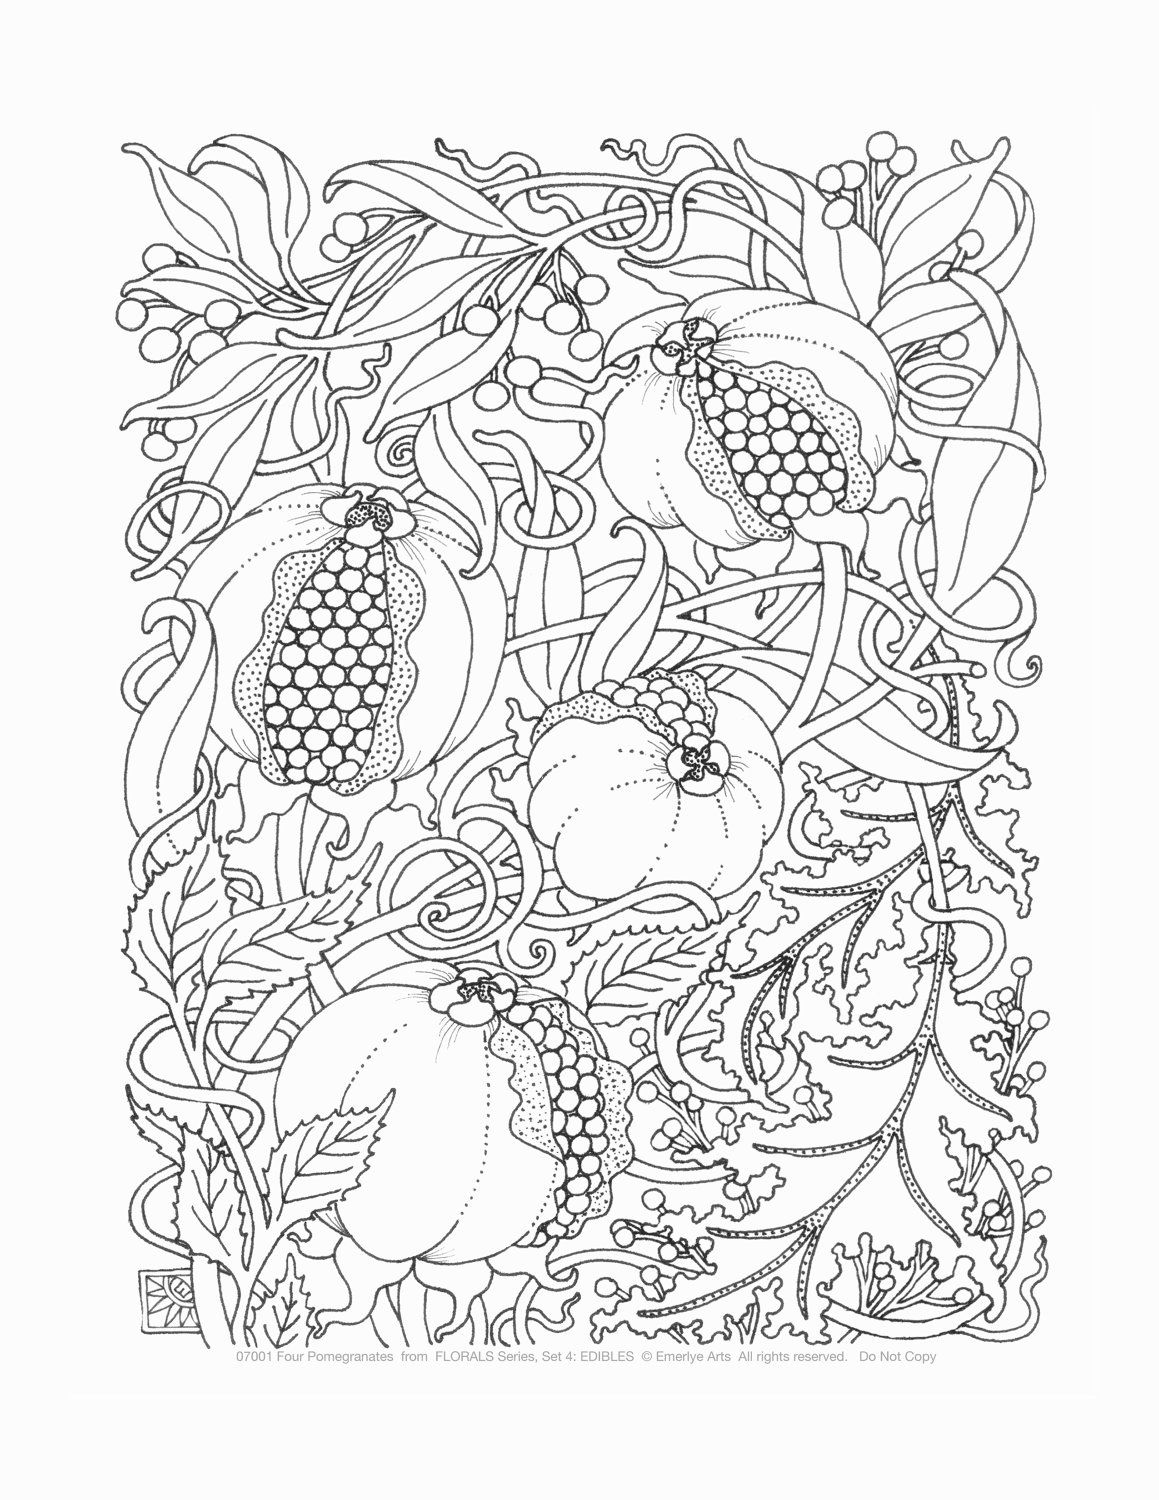 1159x1500 The Coloring Pages For Adults Simple Coloring Book That You Can